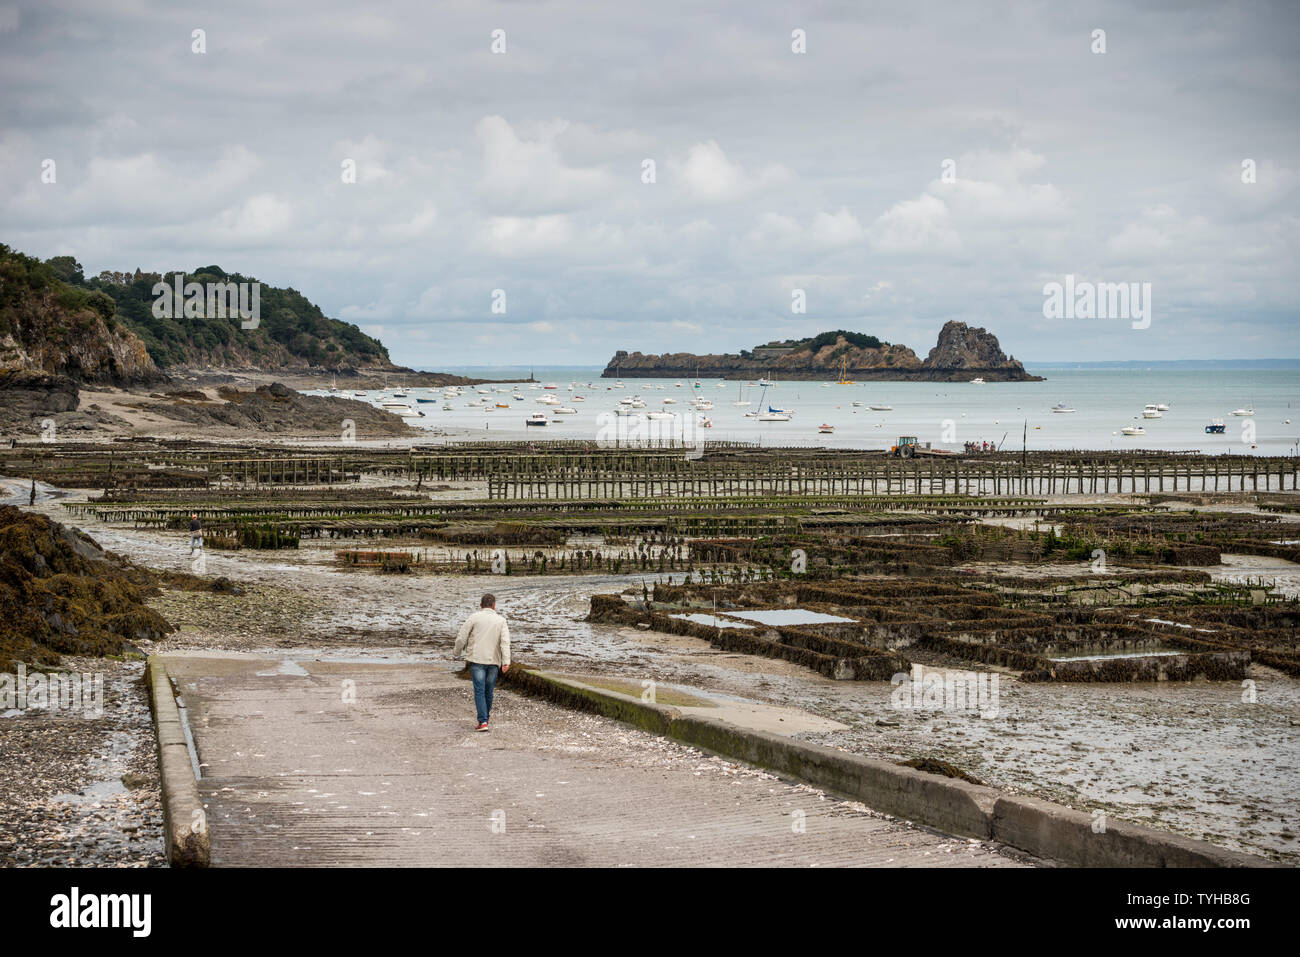 Oyster beds revealed by low tide on the beach of Cancale, Brittany, France Stock Photo